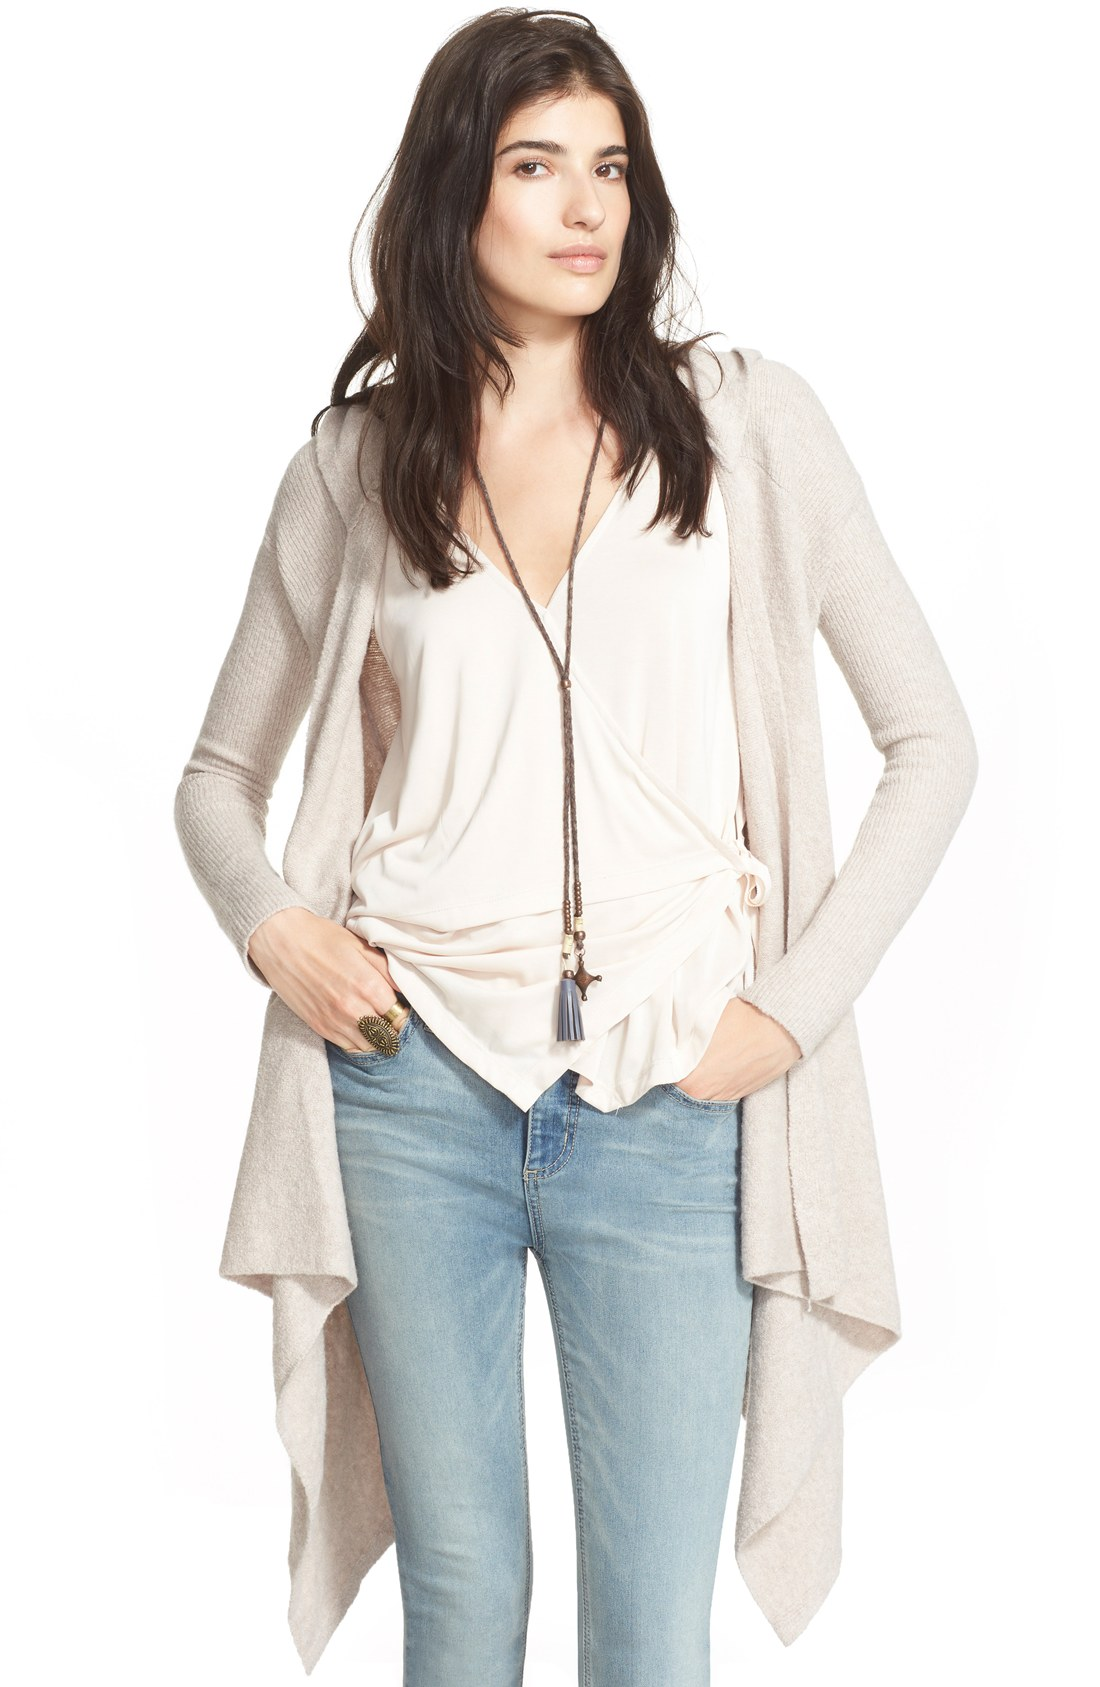 People 'Sloane' Hooded Wrap Cardigan | Nordstrom